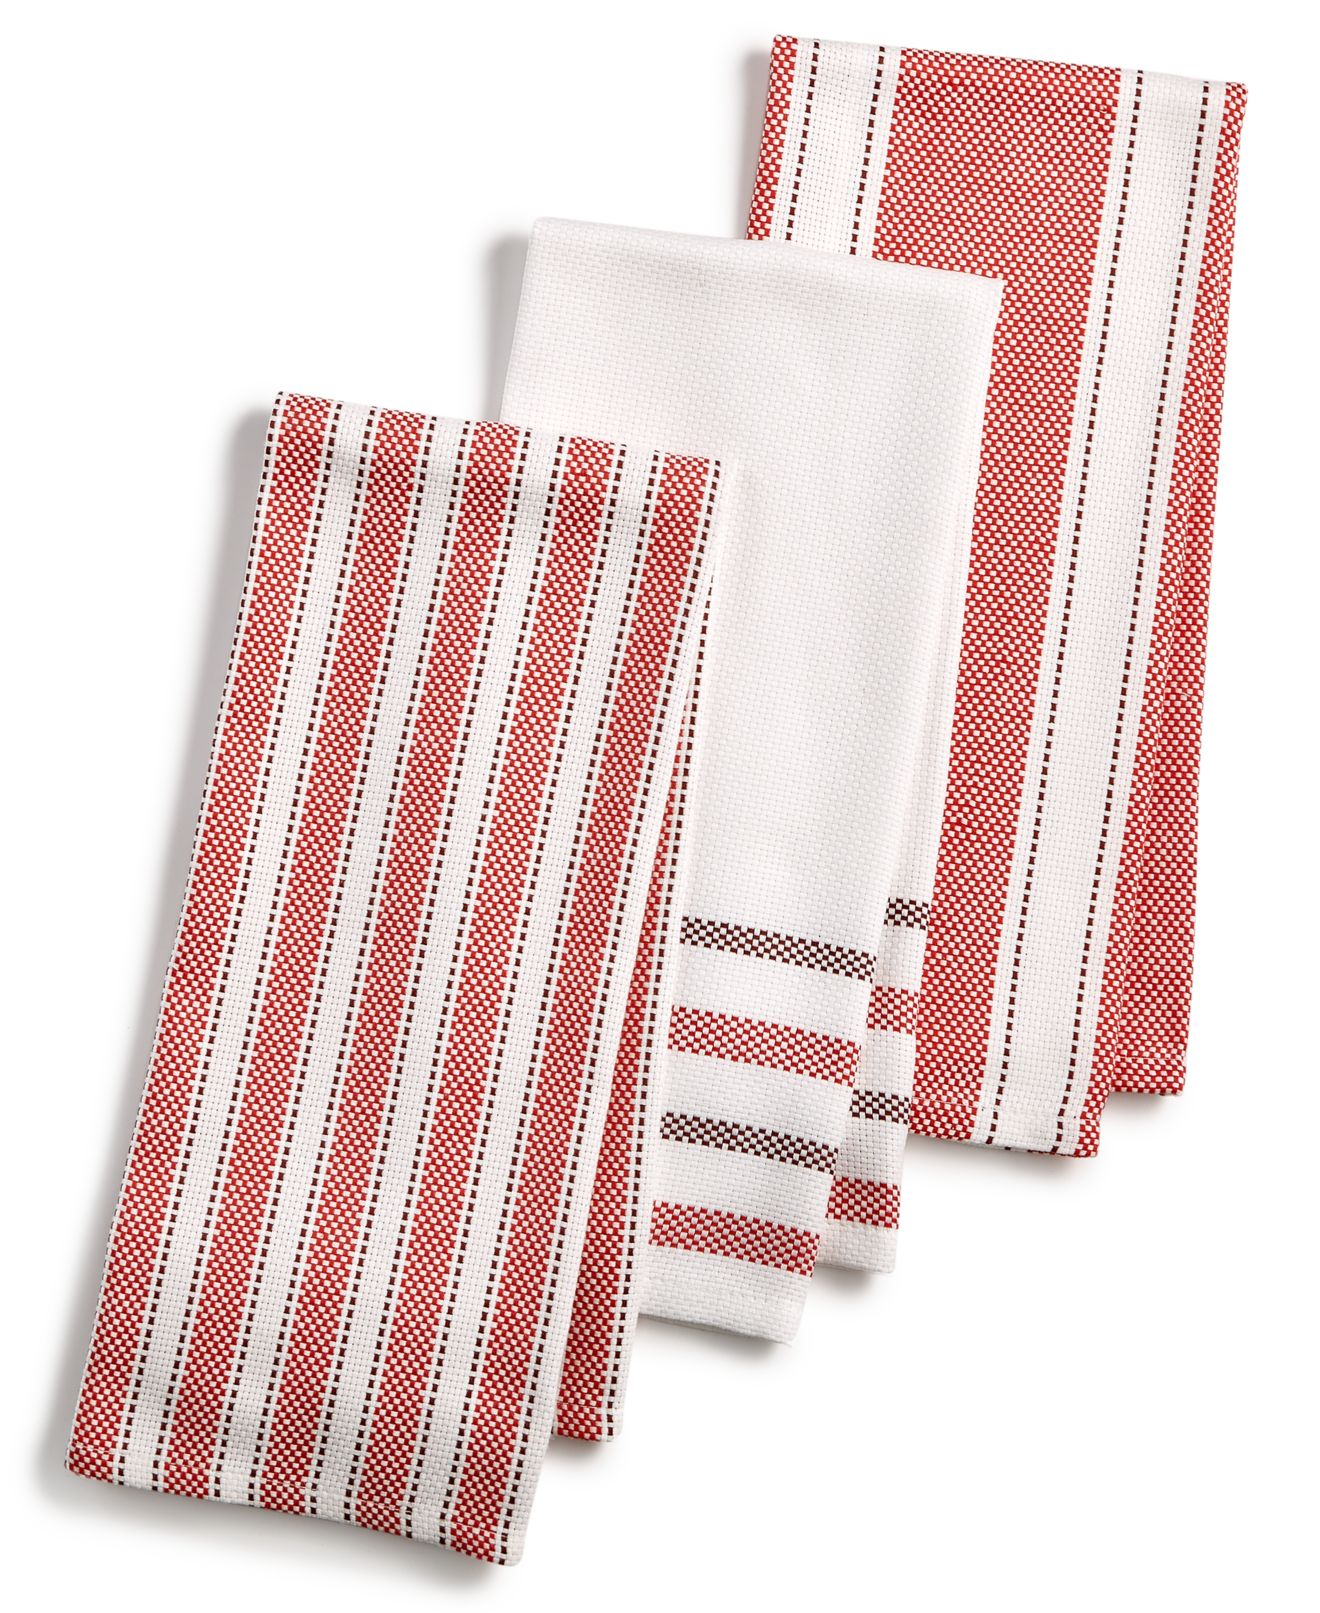 martha stewart collection 3 pc basket weave kitchen towels only